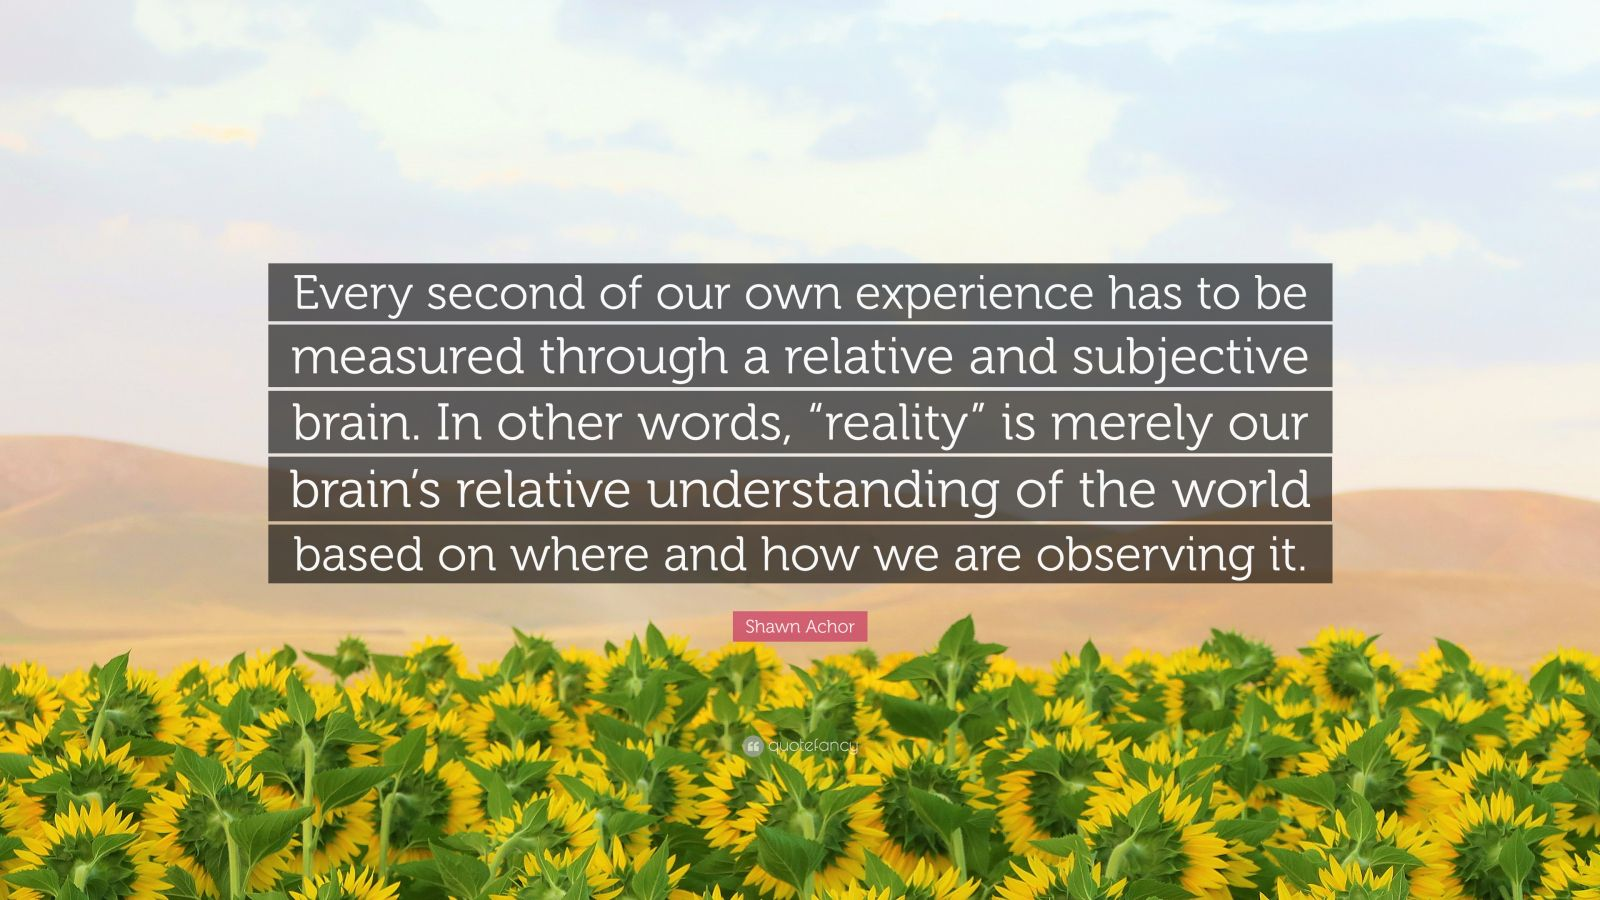 """Shawn Achor Quote: """"Every second of our own experience has to be measured through a relative and subjective brain. In other words, """"reality"""" is merely our brain's relative understanding of the world based on where and how we are observing it."""""""